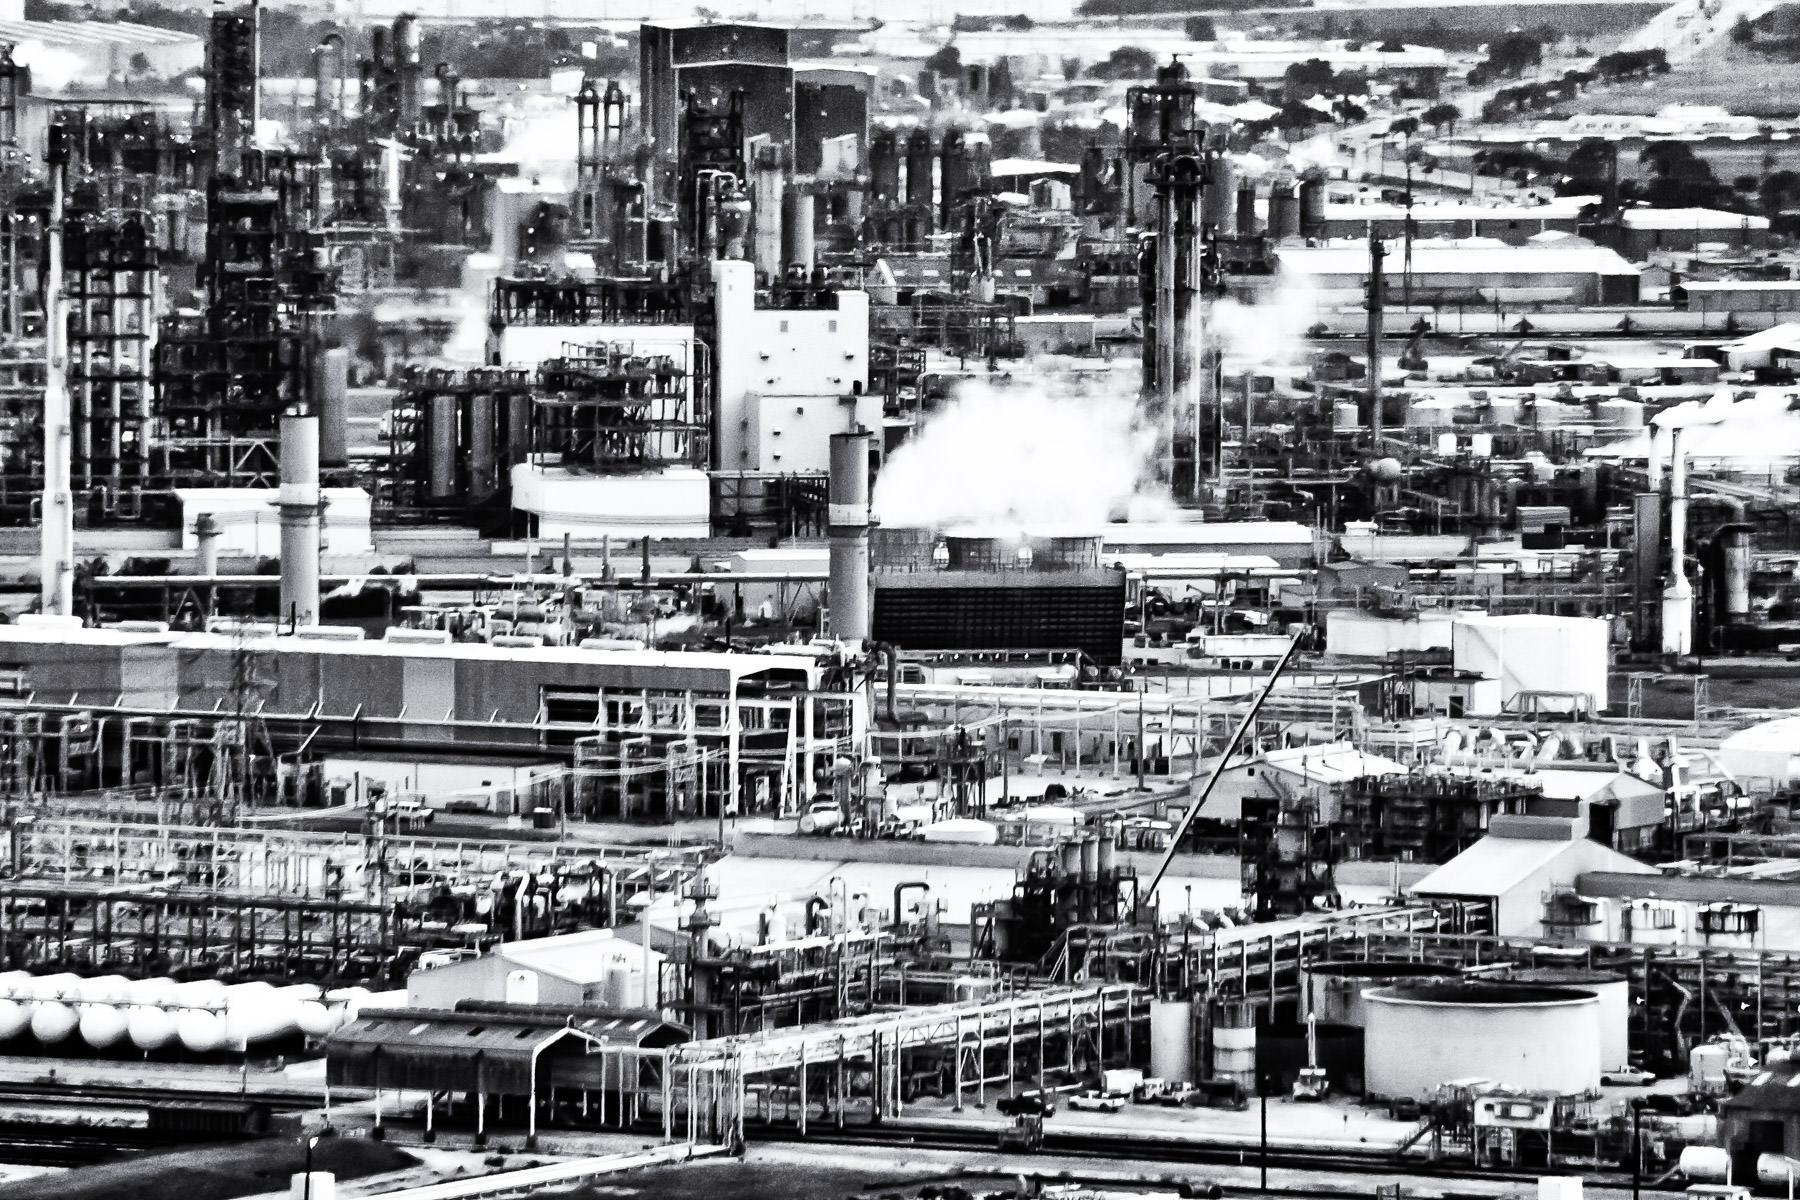 Refineries and chemical plants along the Houston Ship Channel near La Porte, Texas.